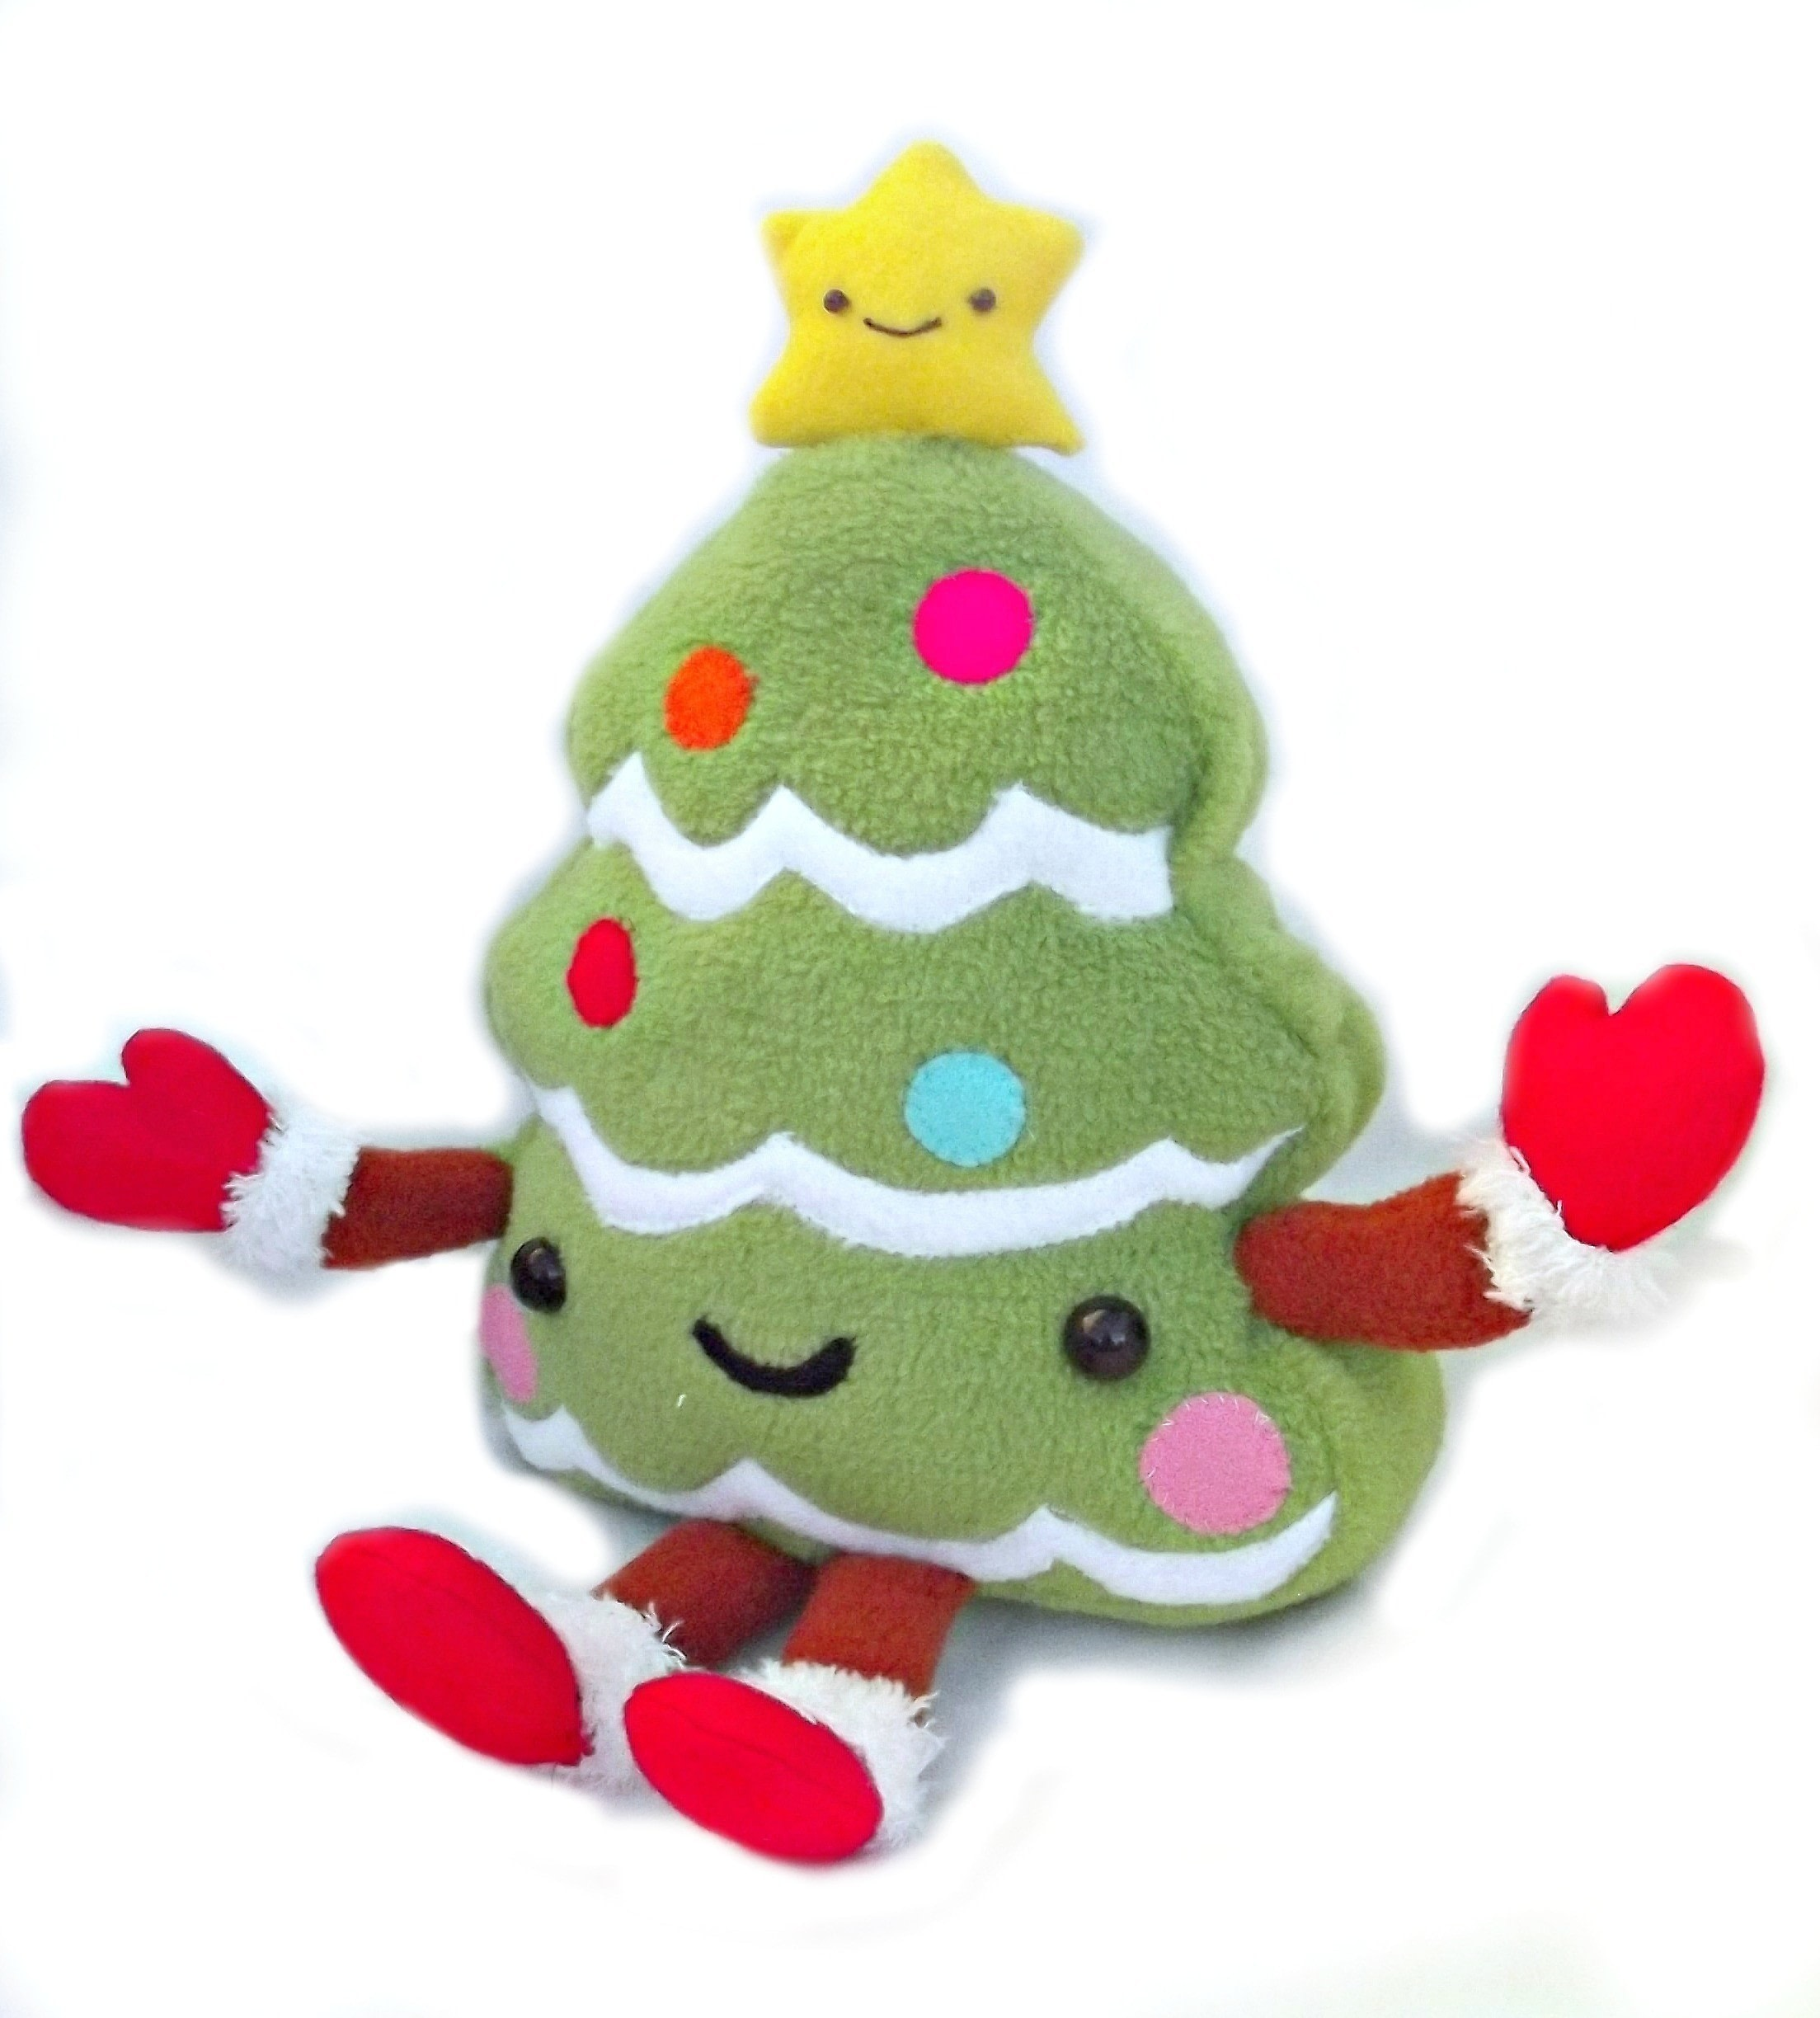 Kawaii Christmas Tree · A Character Plushie · Sewing on Cut Out + Keep